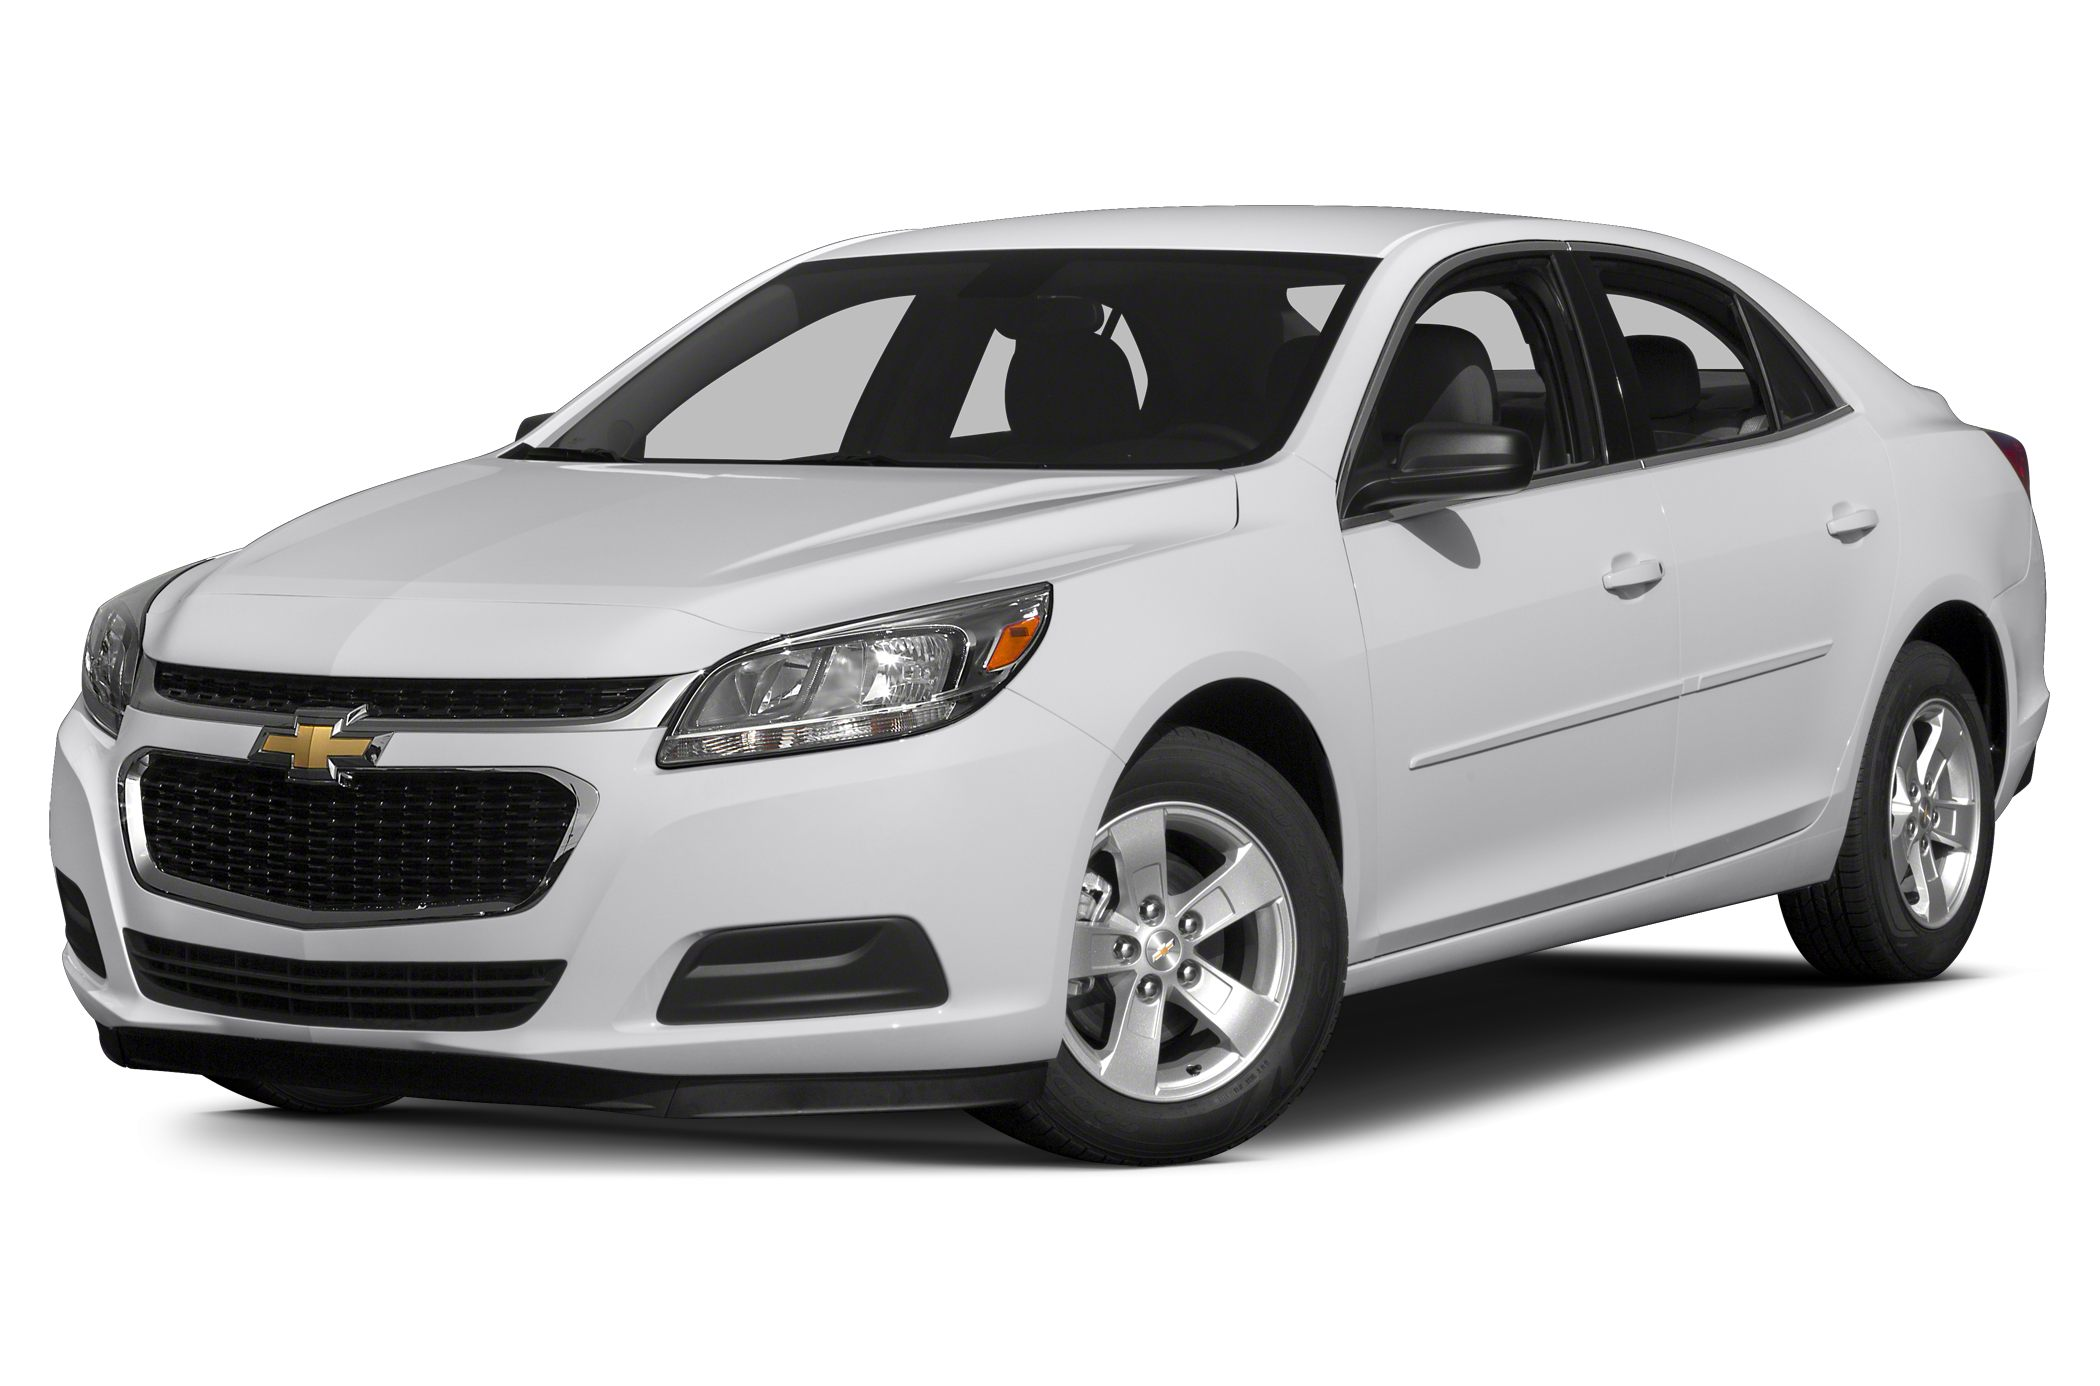 2015 Chevrolet Malibu 2LZ Sedan for sale in Westfield for $34,990 with 0 miles